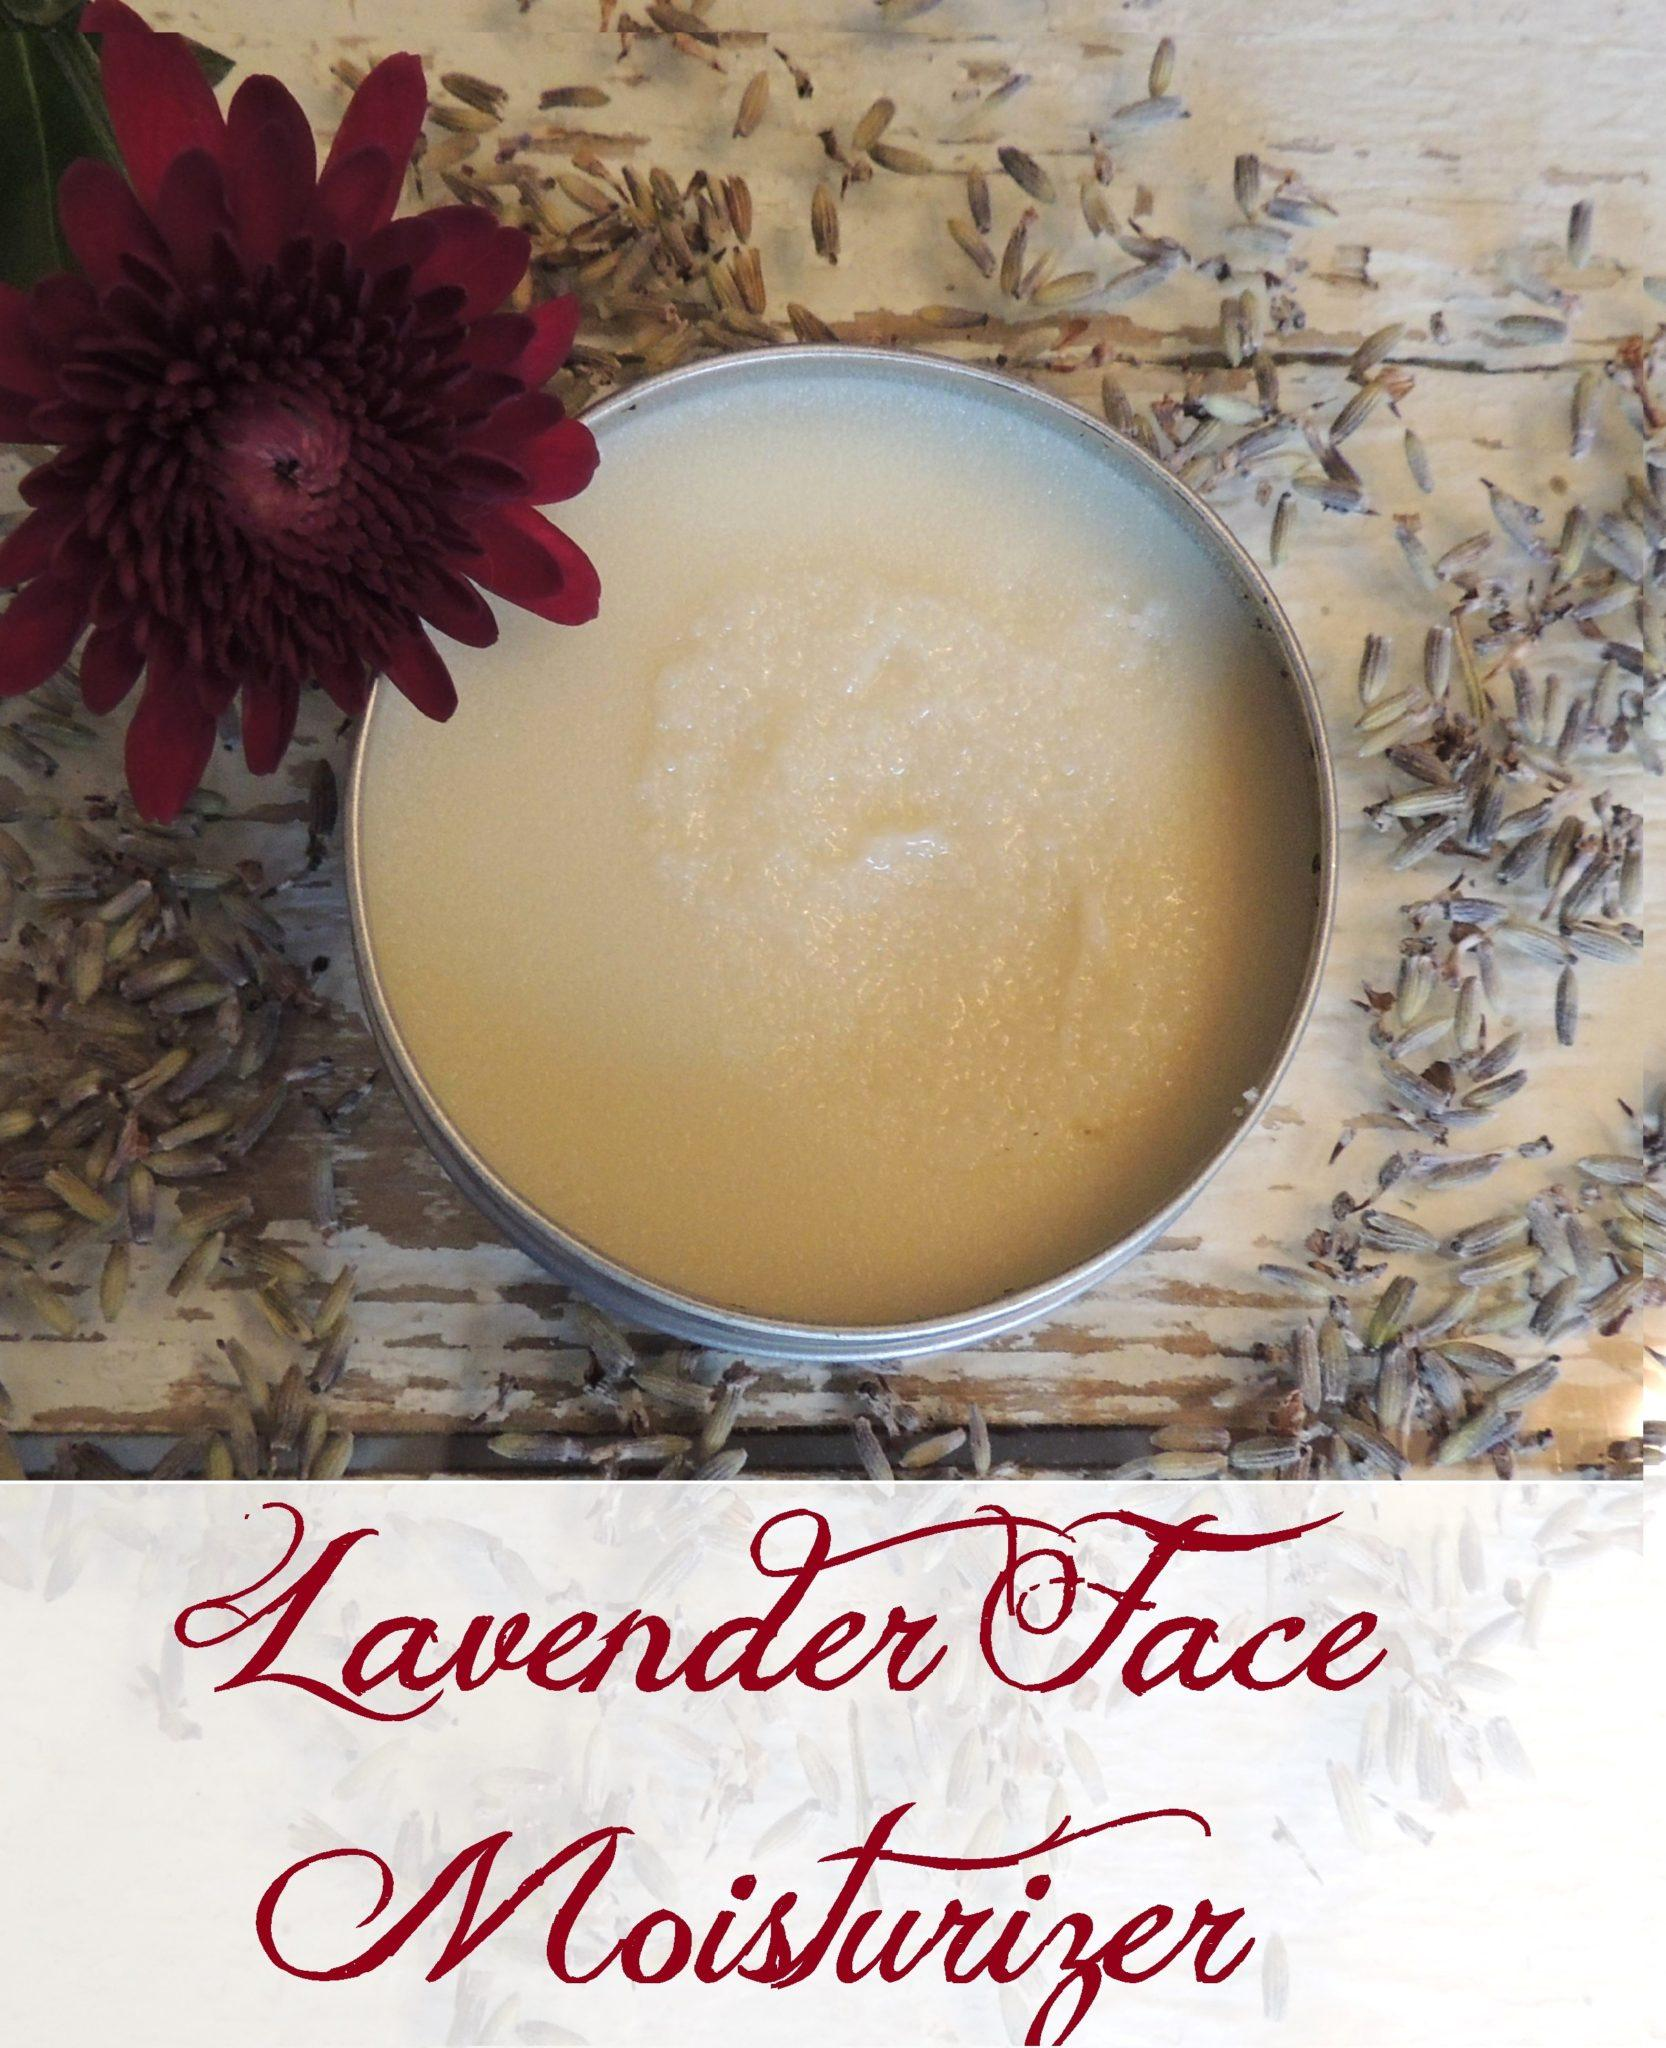 today i m excited to share my lavender face moisturizer with you